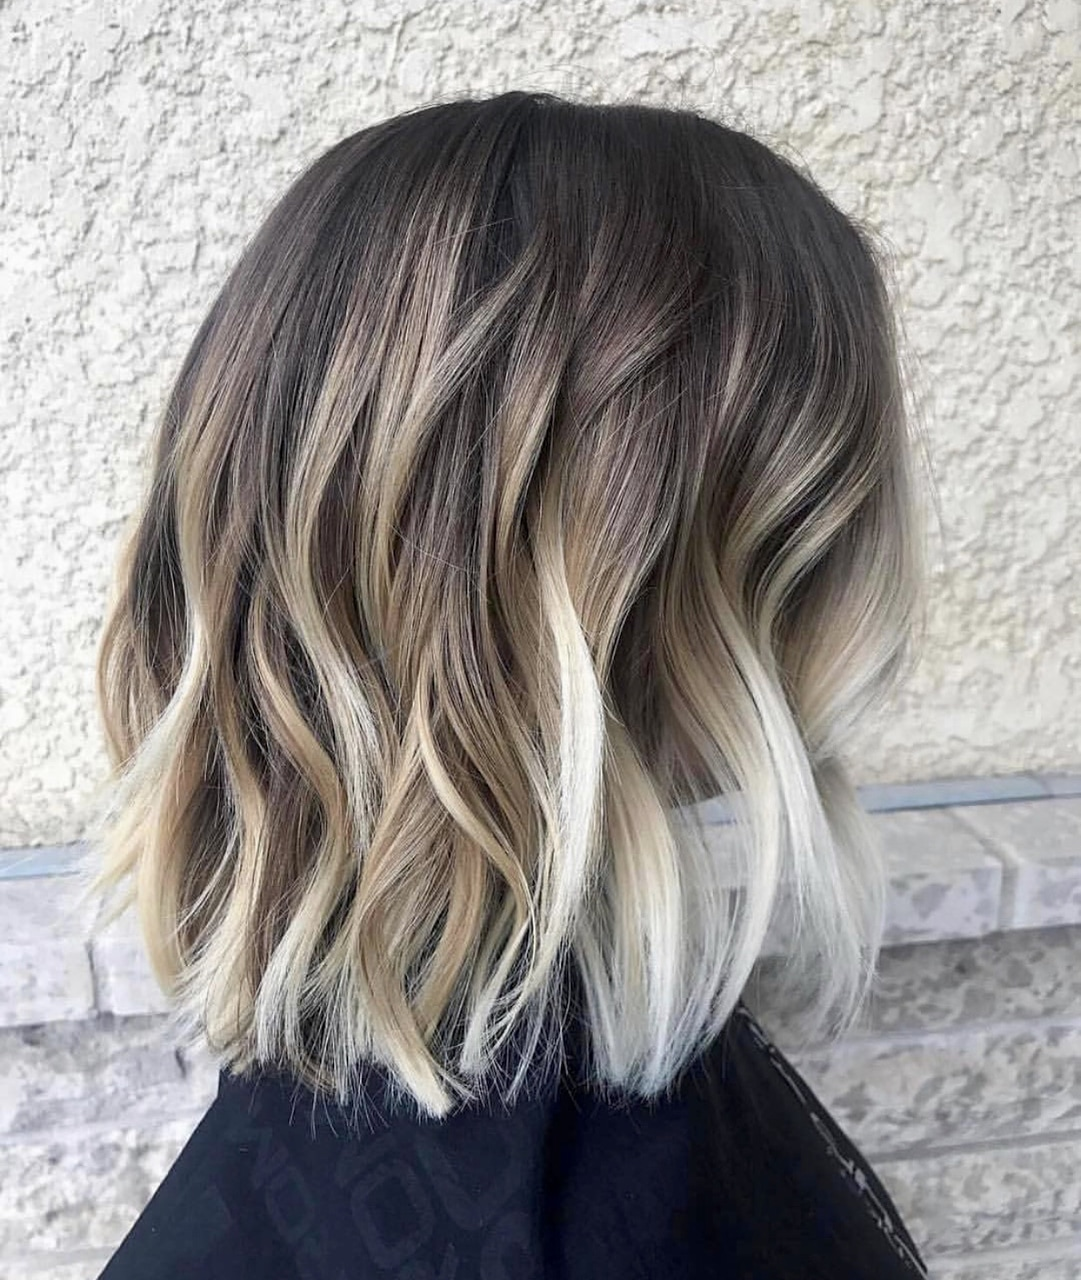 blond, inspiring, hairstyle and hairdresser